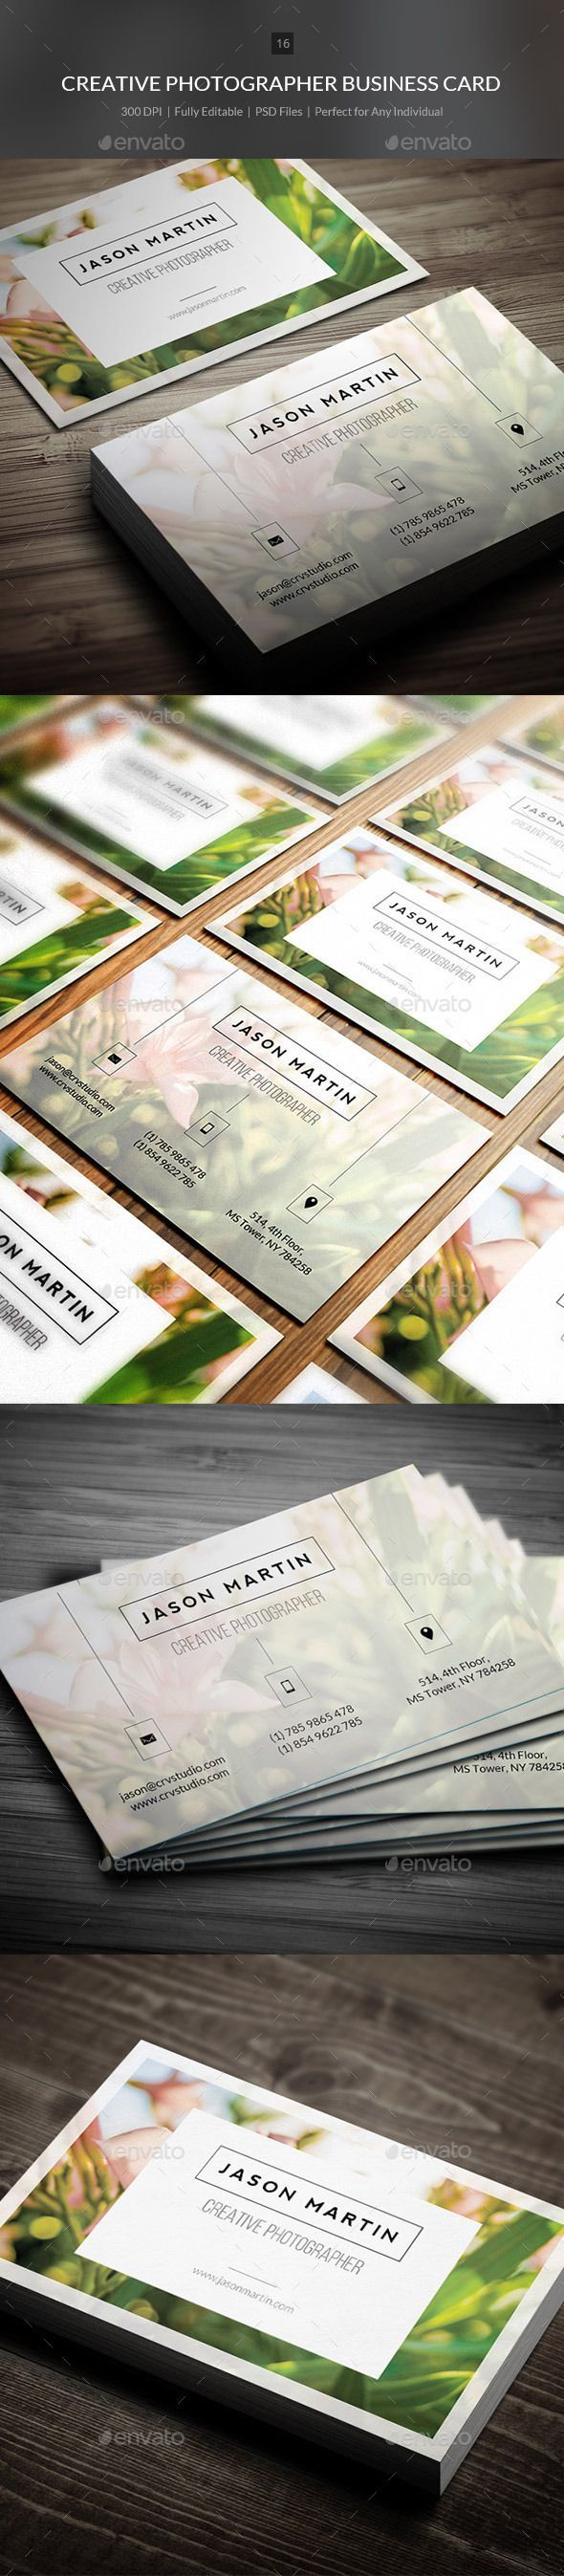 Creative Photographer Business Card Template PSD | Buy and Download: http://graphicriver.net/item/creative-photographer-business-card-14/9177456?WT.oss_phrase=&WT.oss_rank=21&WT.z_author=bouncy&WT.ac=search_thumb&ref=ksioks